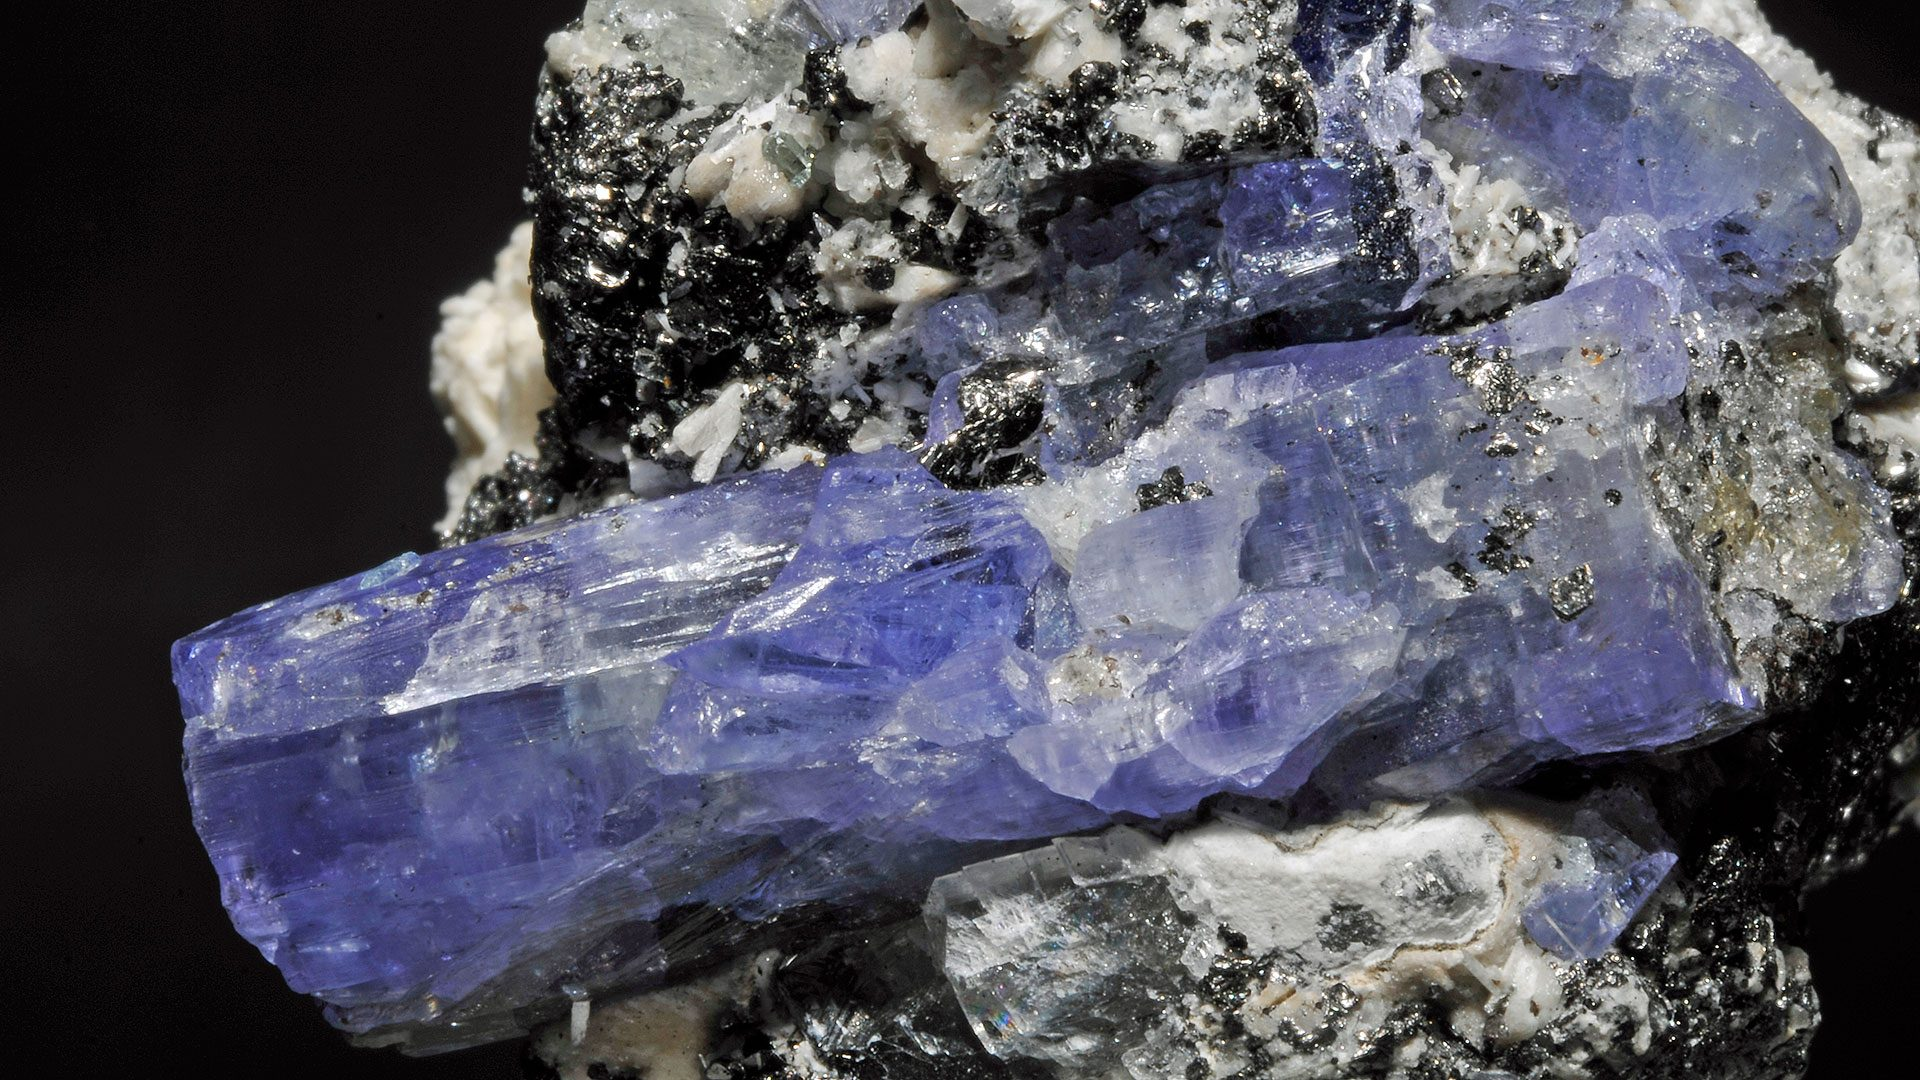 Tanzanite Properties and Meaning - Original Photograph by Parent Géry